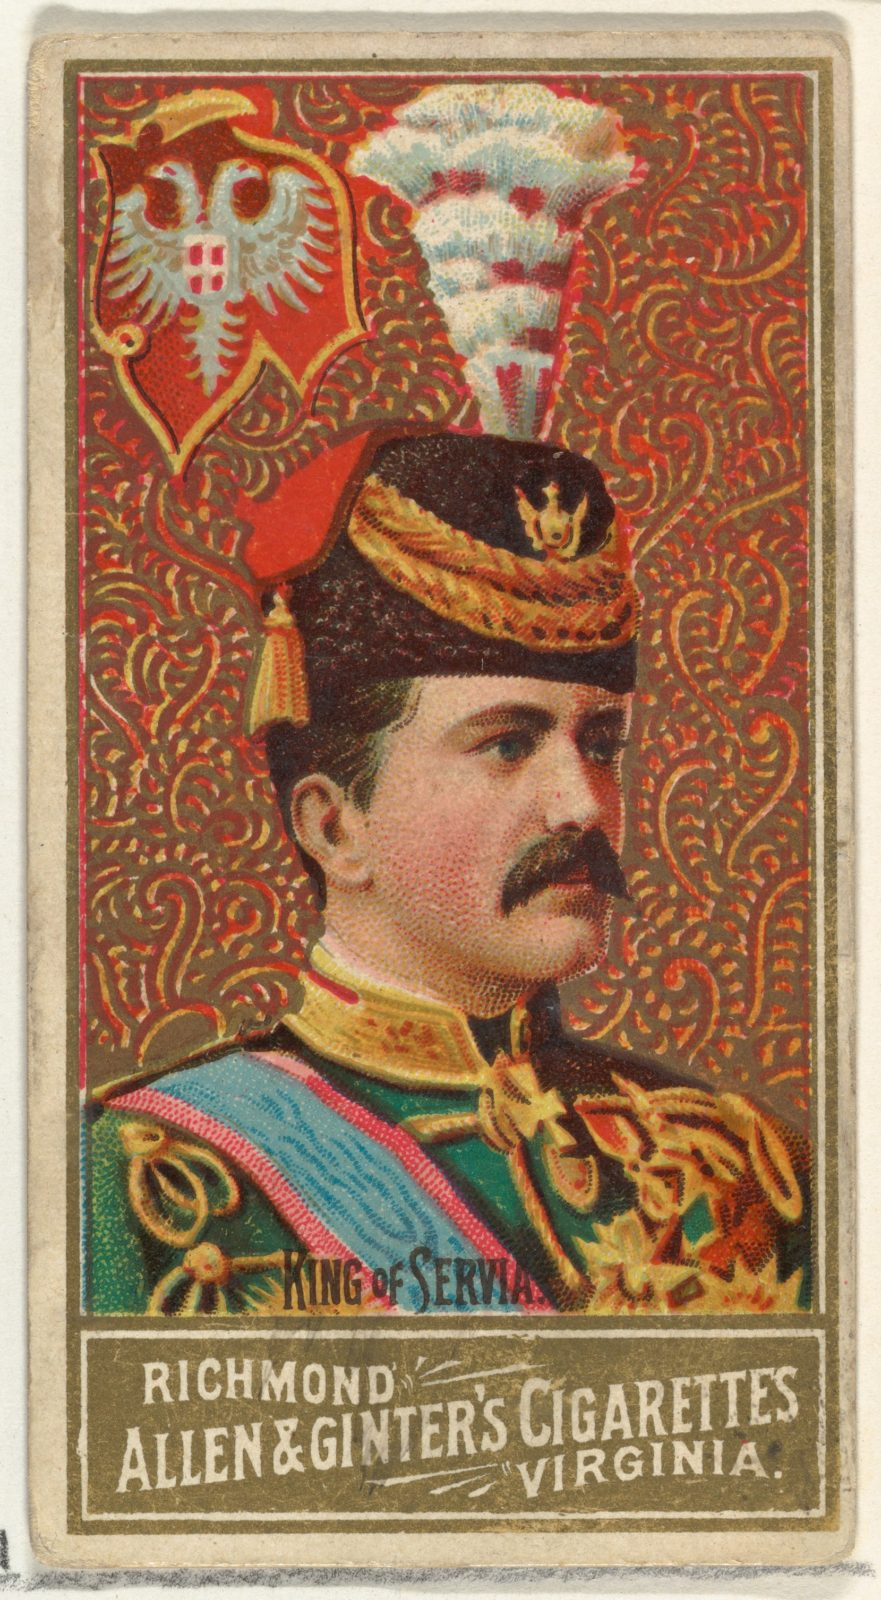 King of Servia, from World's Sovereigns series (N34) for Allen & Ginter Cigarettes